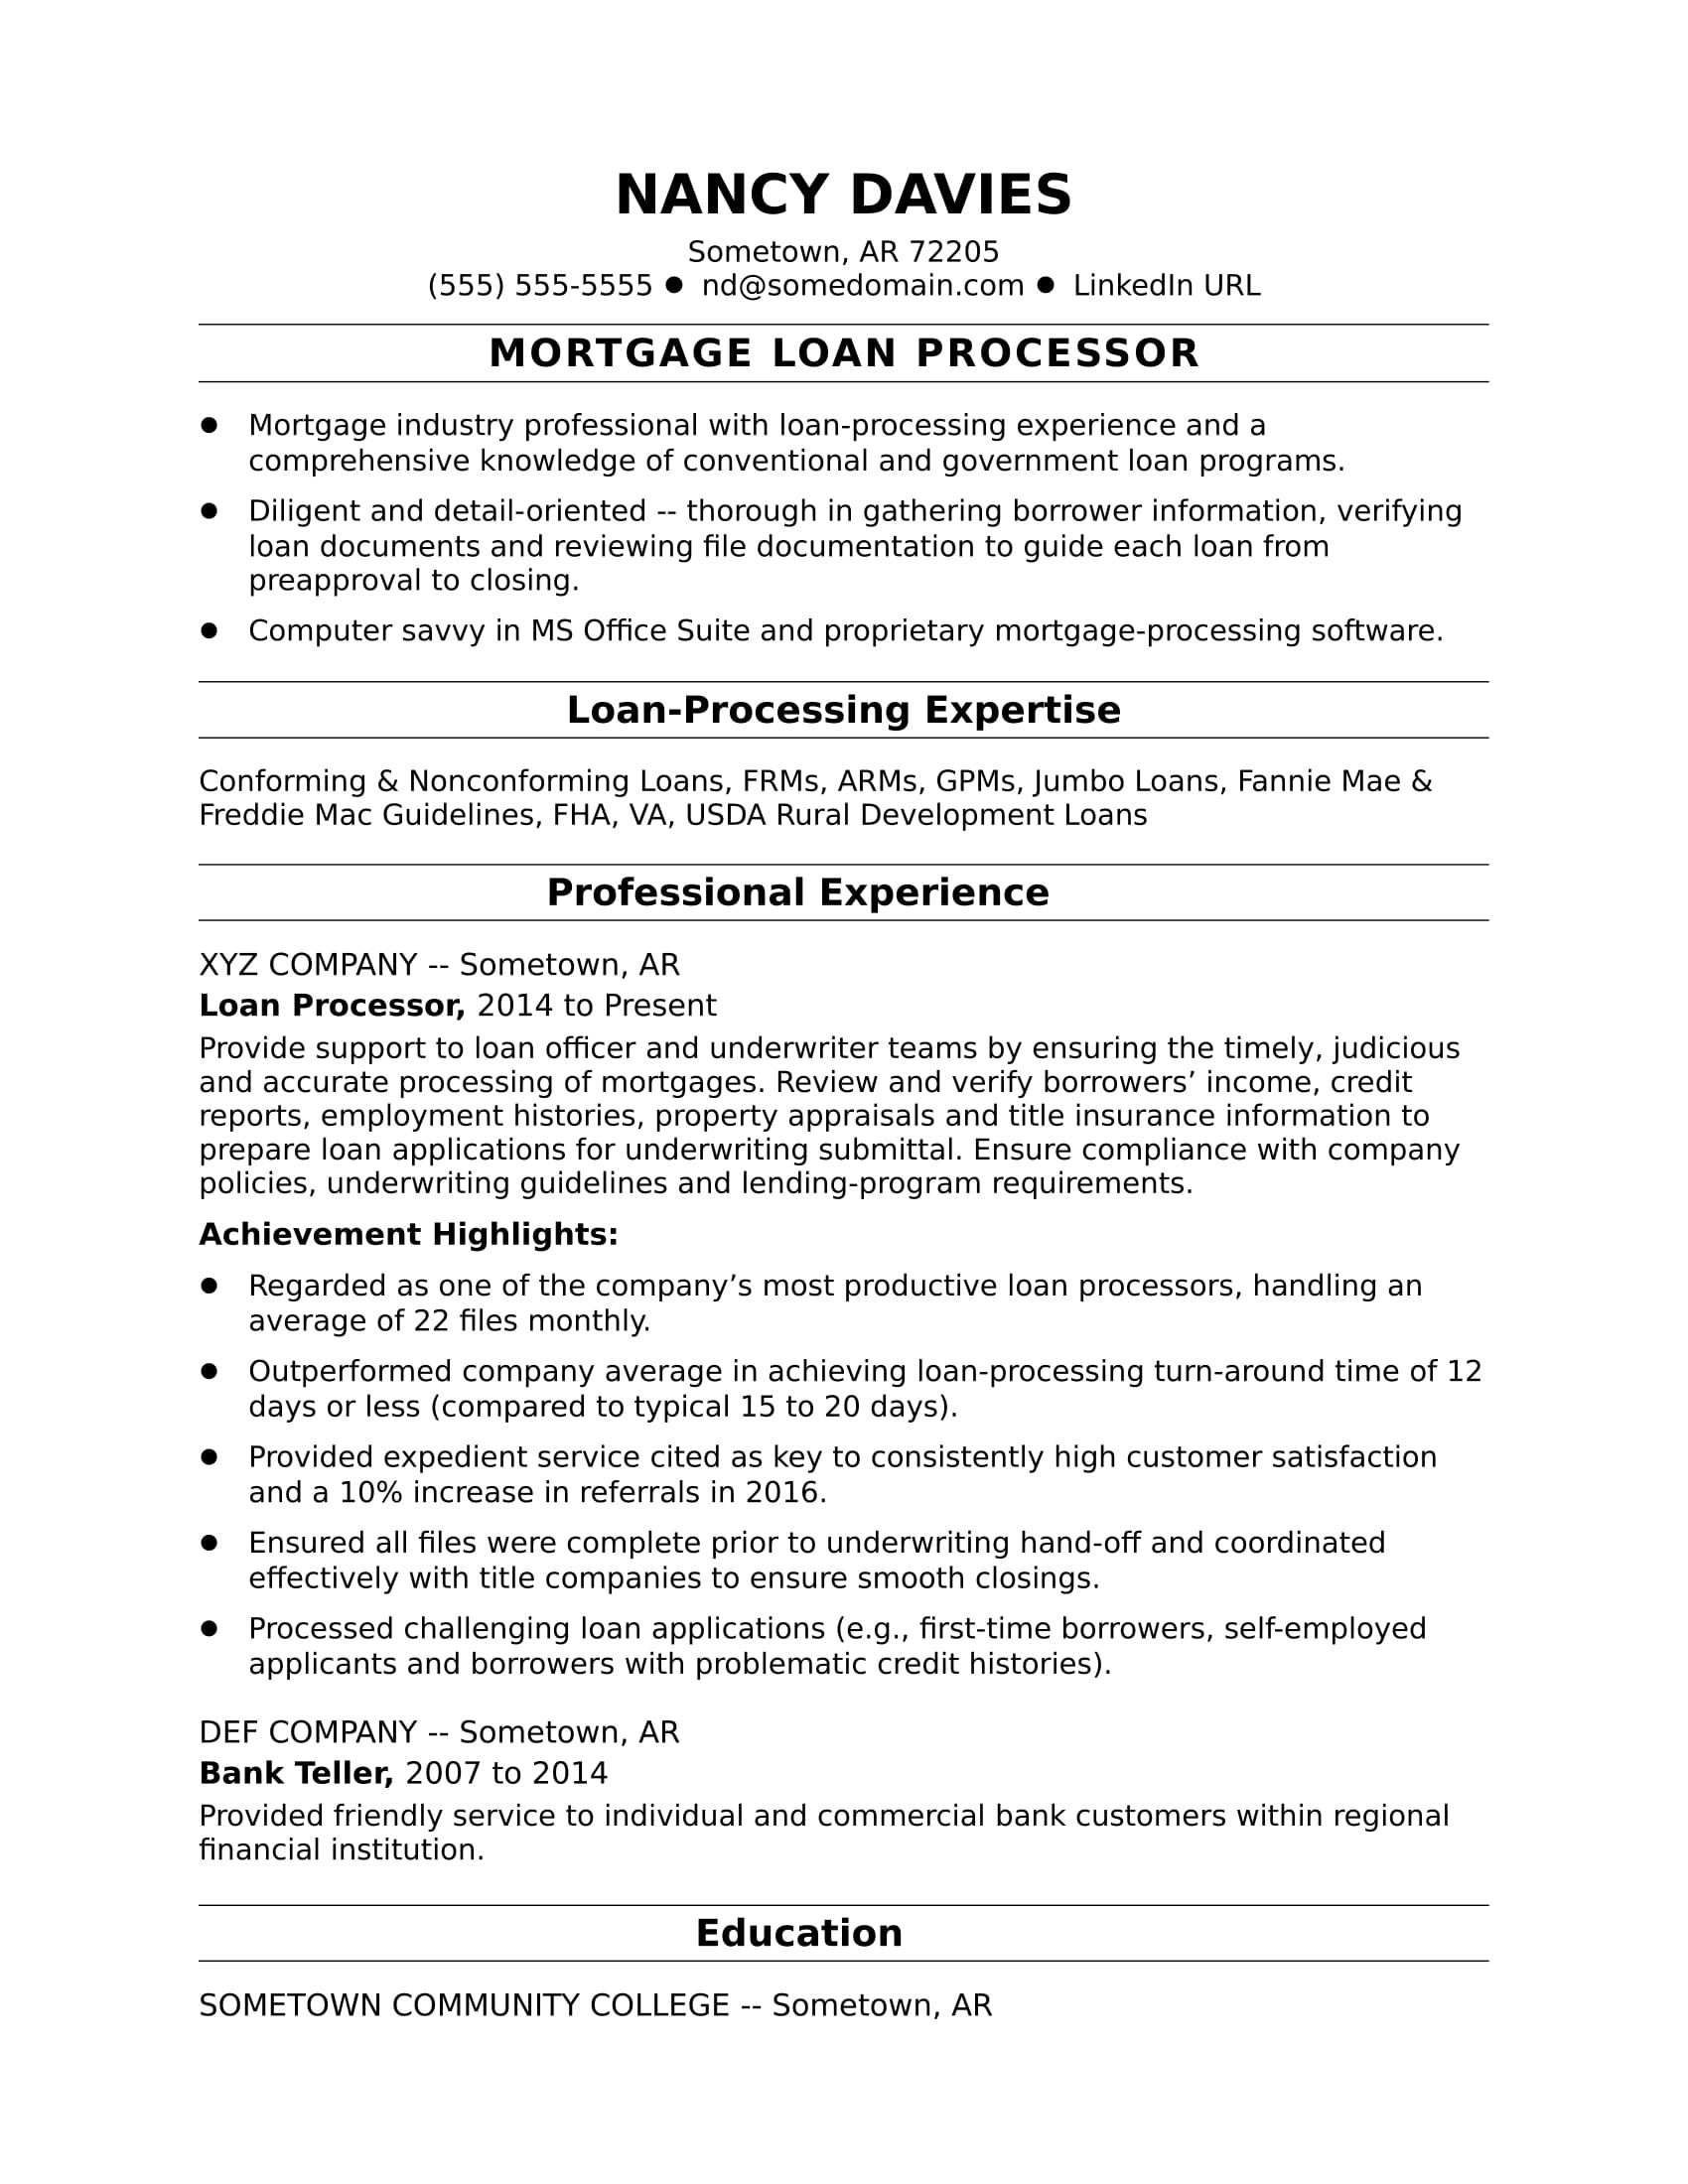 Does Your Resume Demonstrate How Accurately And Efficiently You Process Loans If Not Borrow Ideas From This Sample Resume For A Mortgage Loan Processor Mortgage Loan Officer Mortgage Loans Mortgage Processor